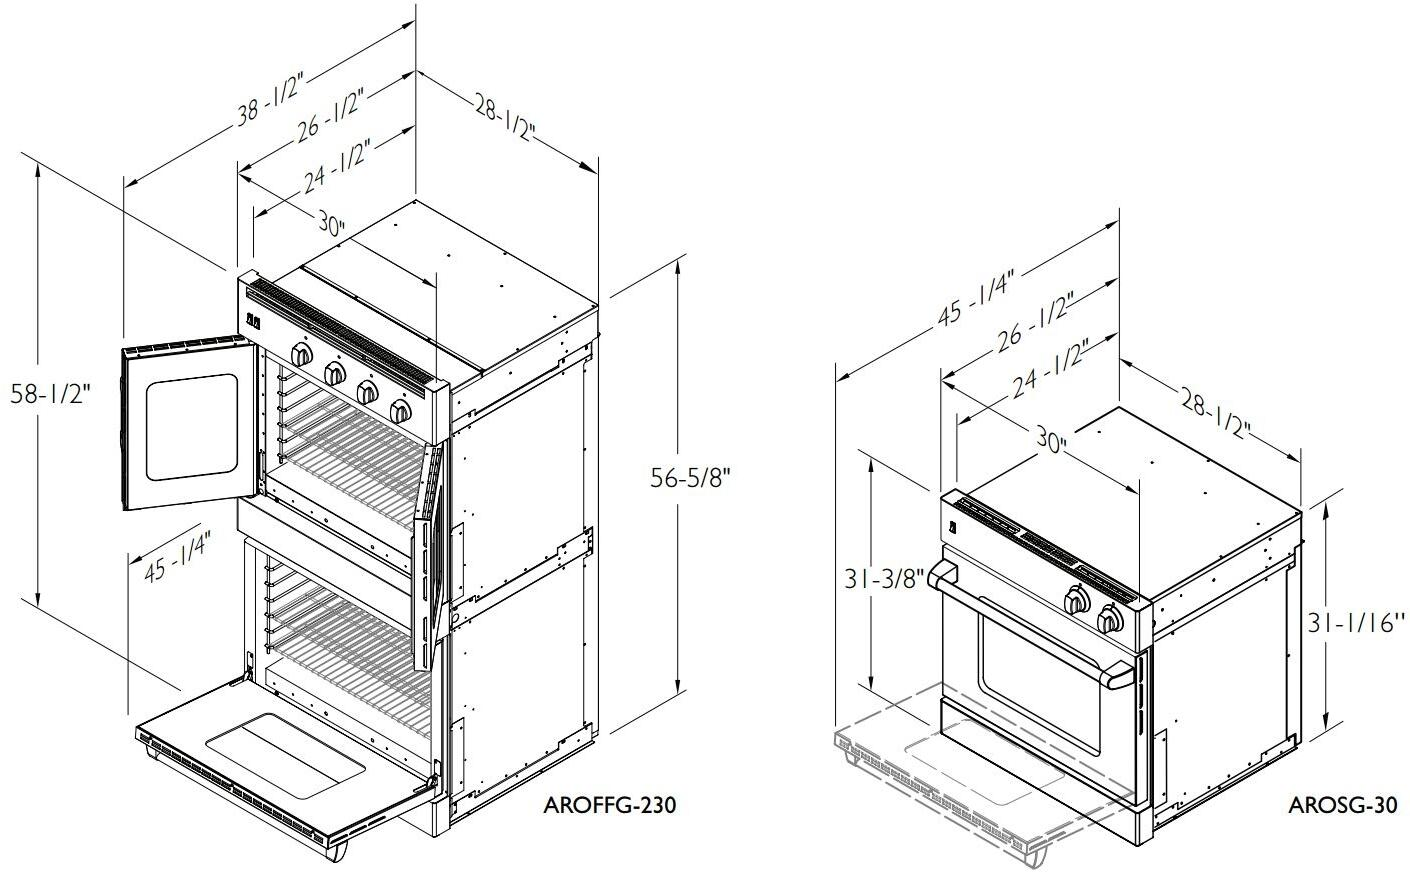 Wiring A Wall Oven 230 Diagram Will Be Thing Electric American Range Arofse230 30 Inch Double In Maytag Installation